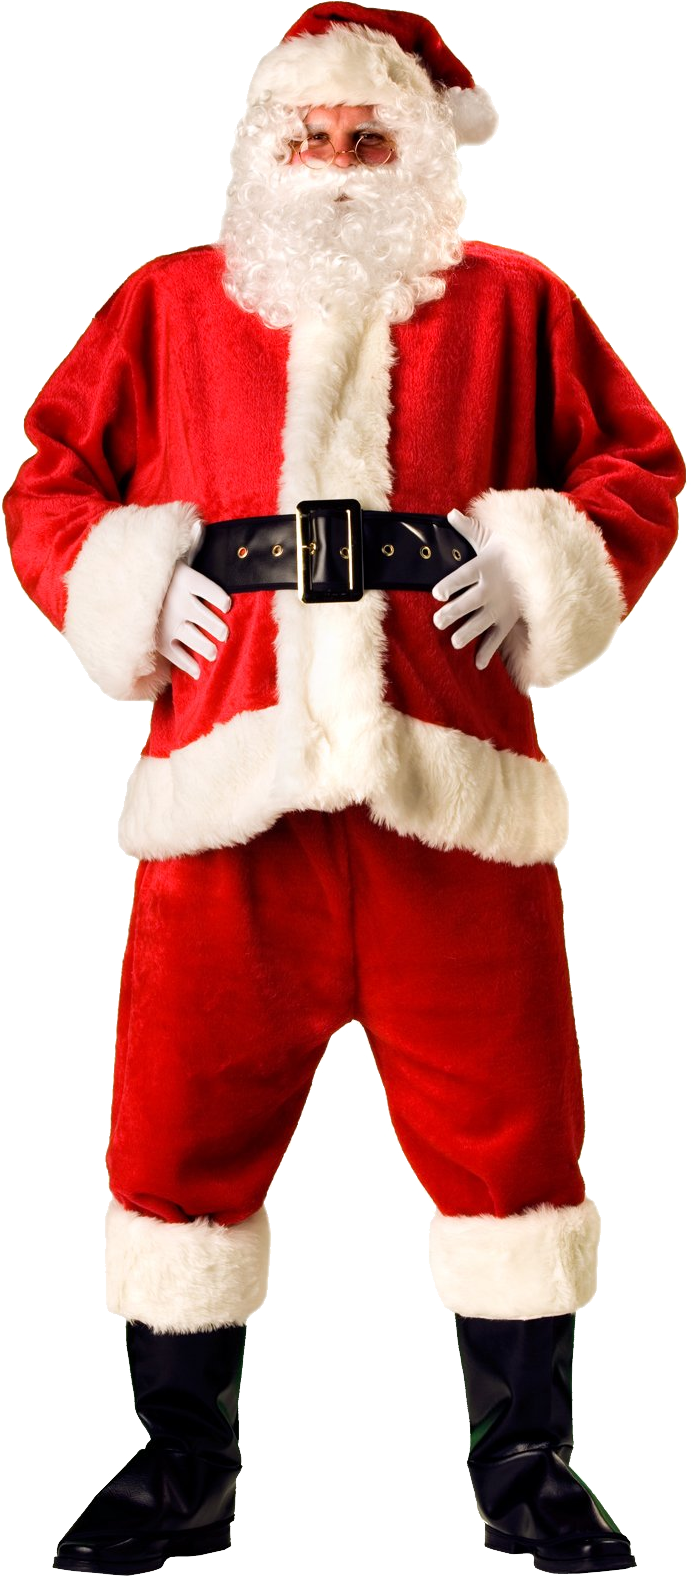 Santa clothes png. Claus images free download